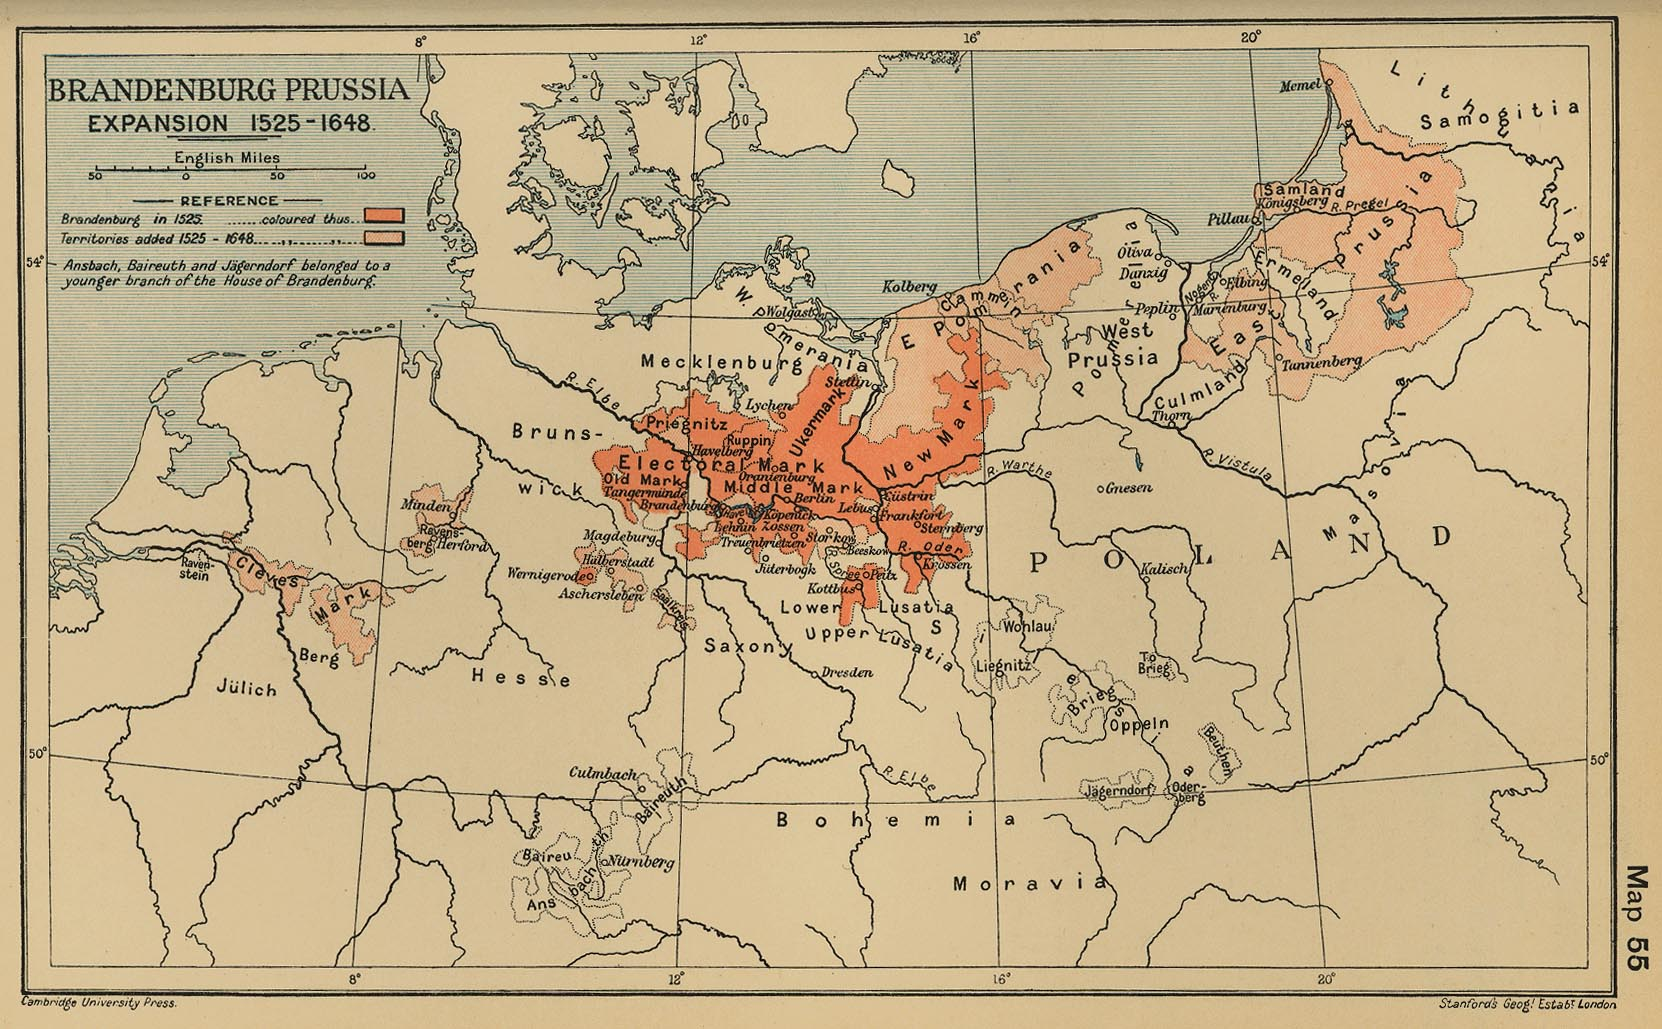 Historical maps of germany 1500 brandenburg prussia expansion 1525 1648 cambridge modern history atlas gumiabroncs Image collections